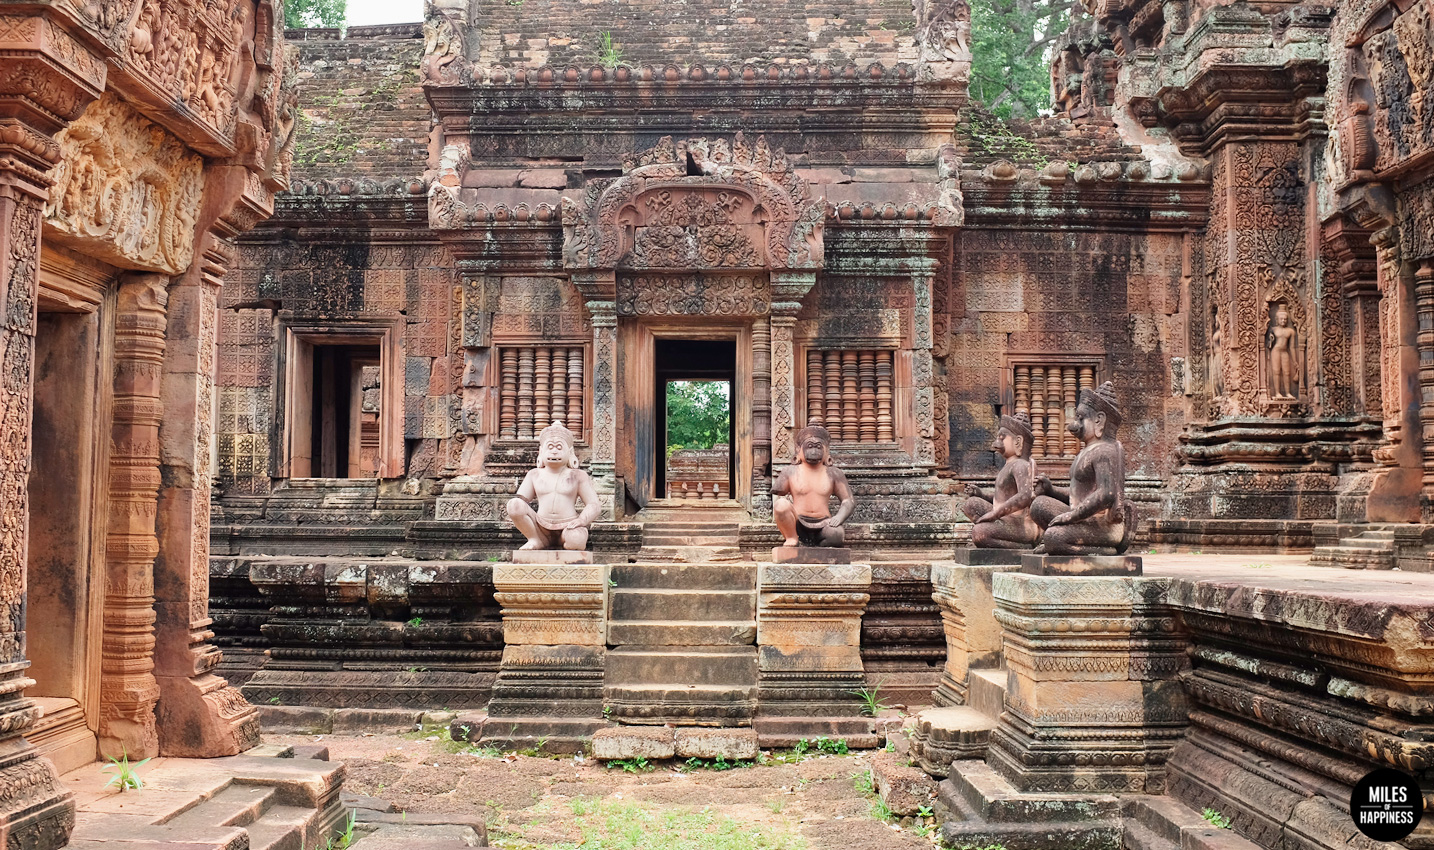 Itinerary of a 4 days trip in Cambodia : Banteay Srei